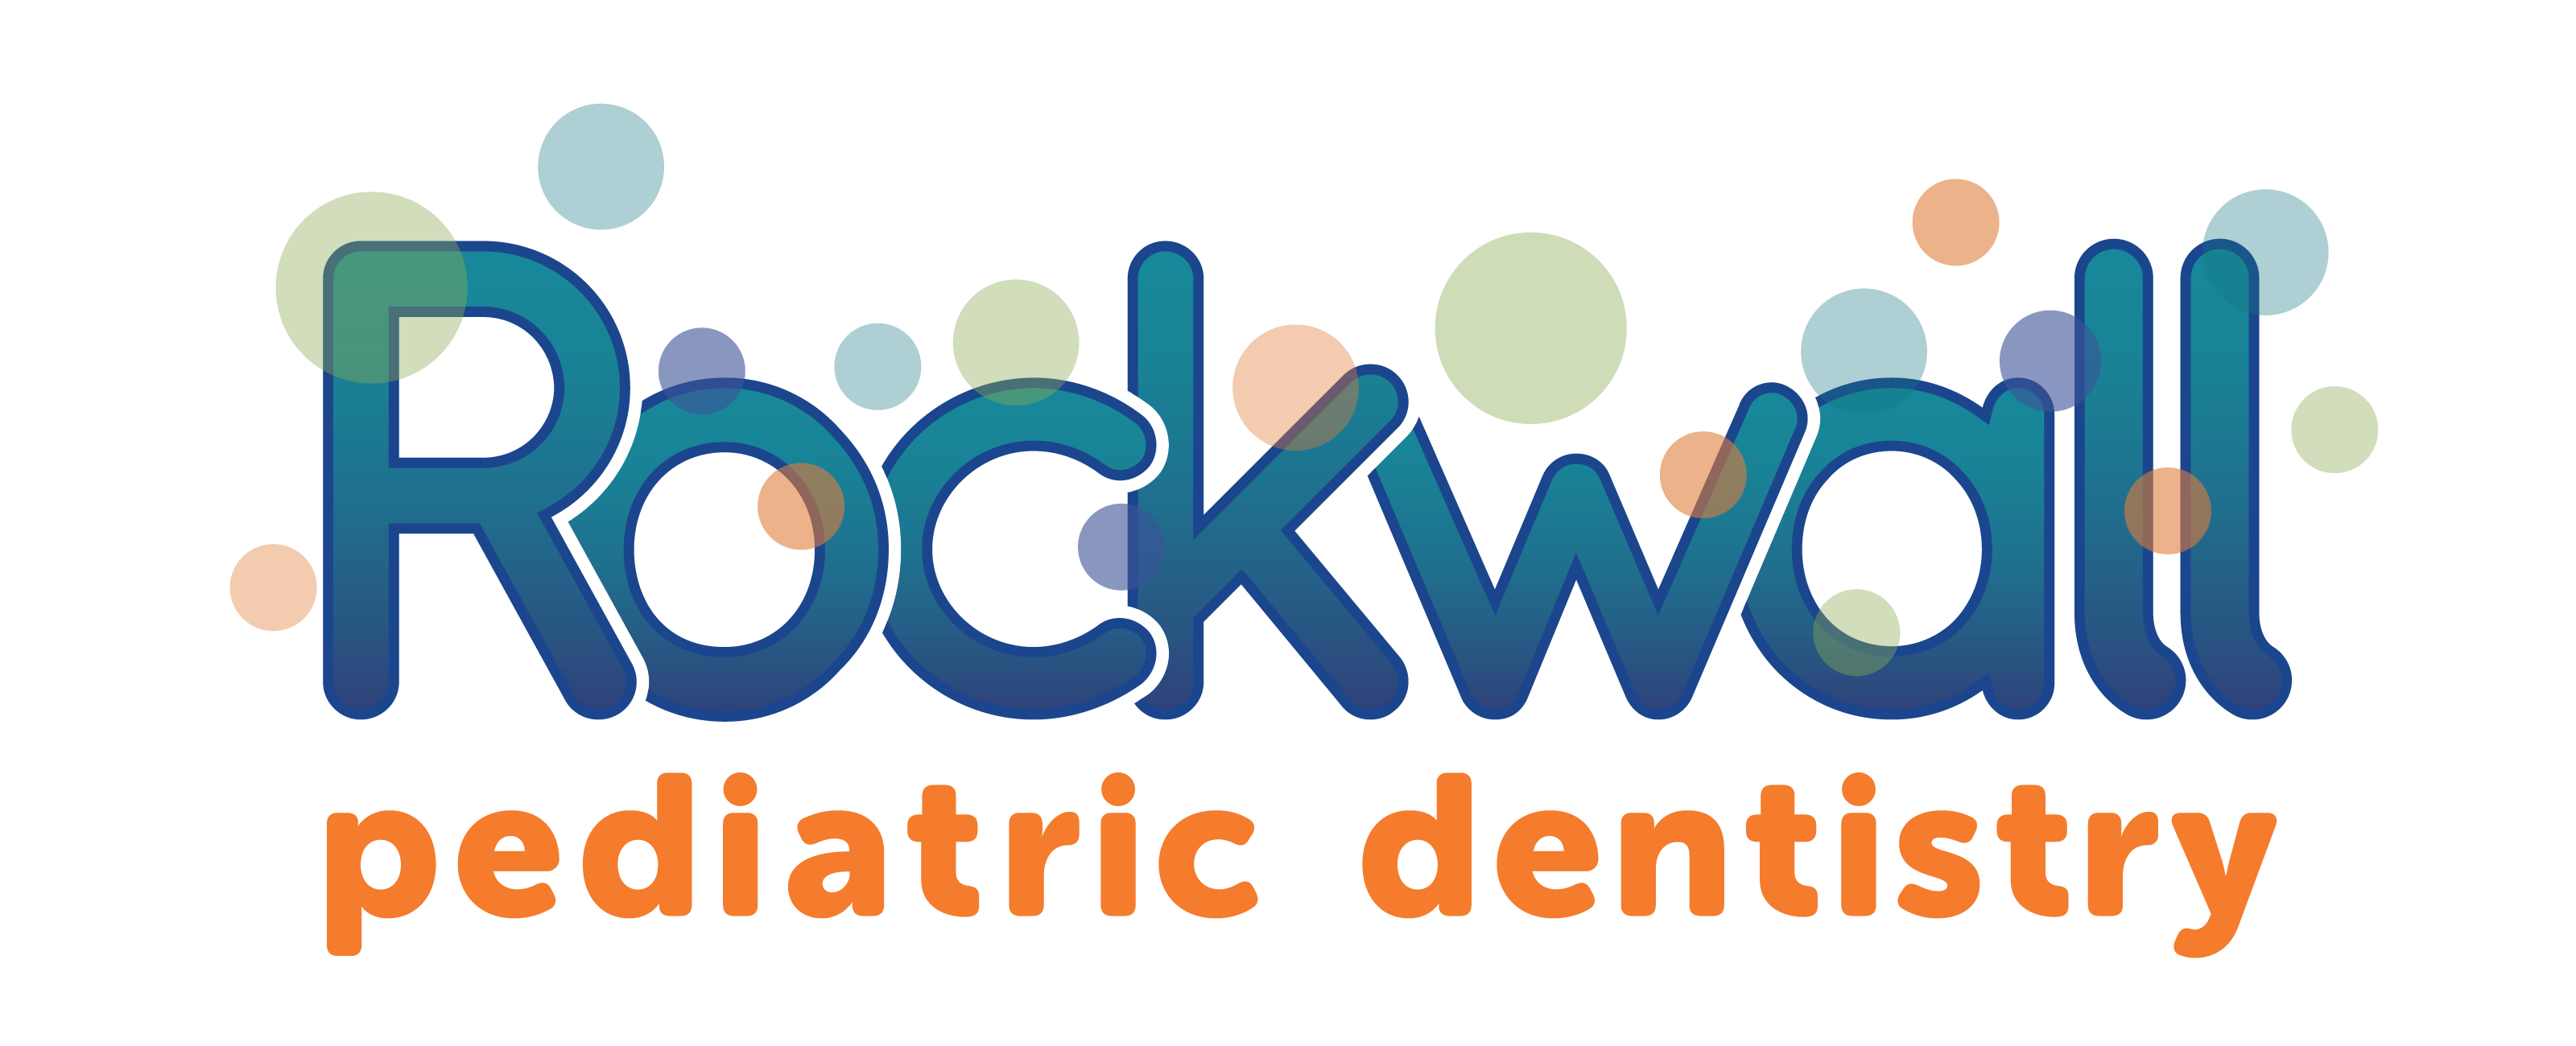 Rockwall Ped. Dentistry